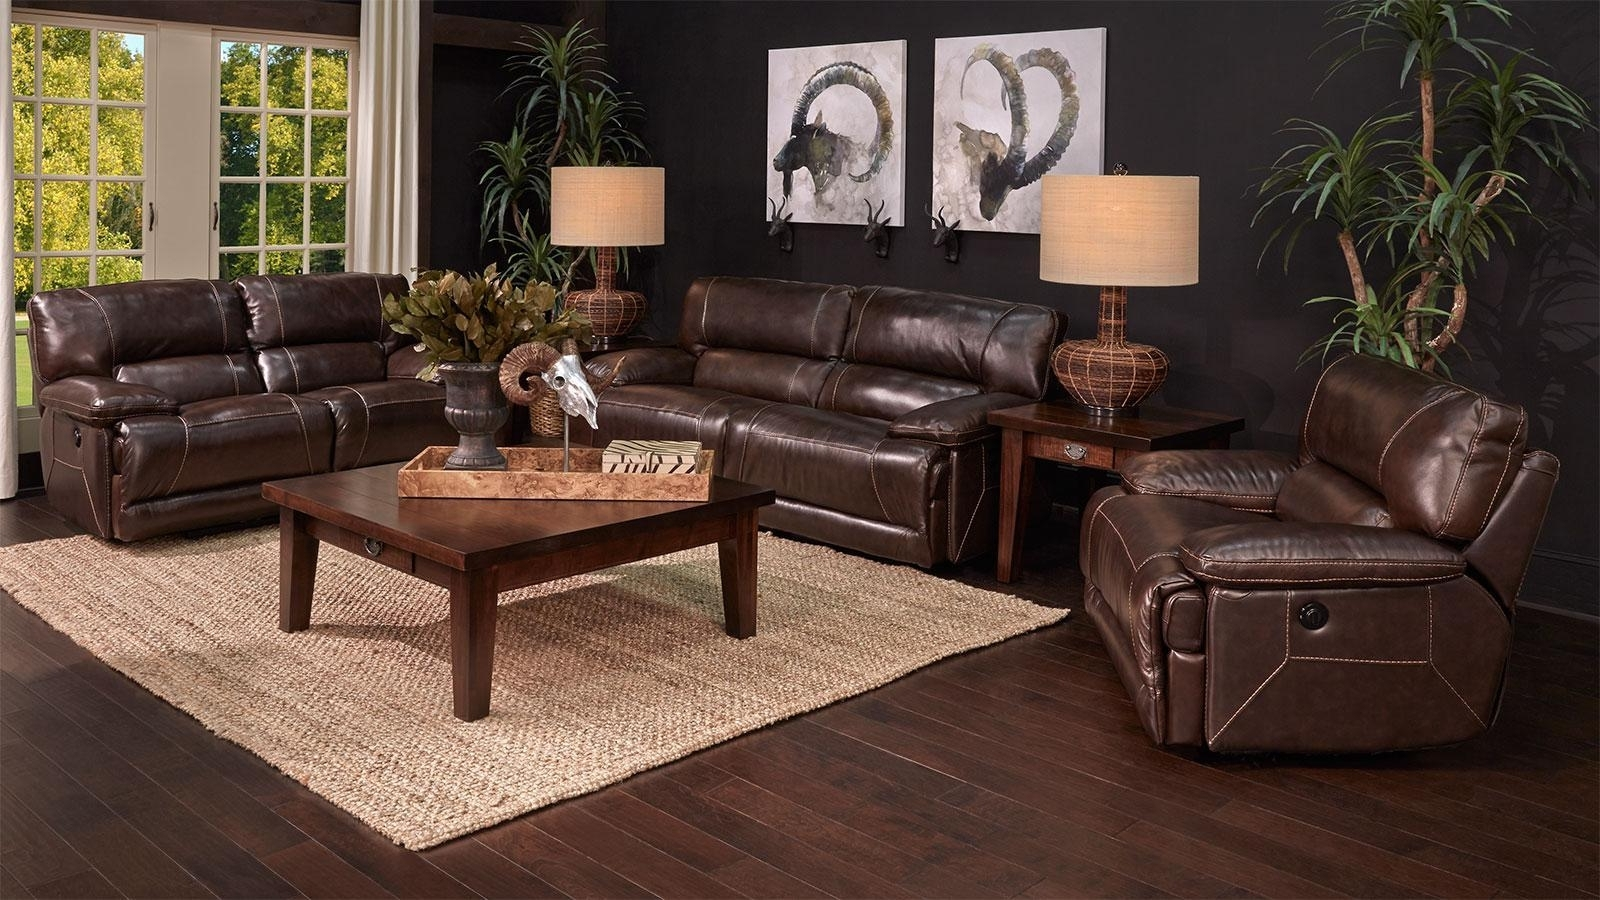 Gallery Furniture Sectional Sofas Regarding Current Star Furniture Sectionals Gallery Furniture Outlet Bell Furniture (Gallery 14 of 20)